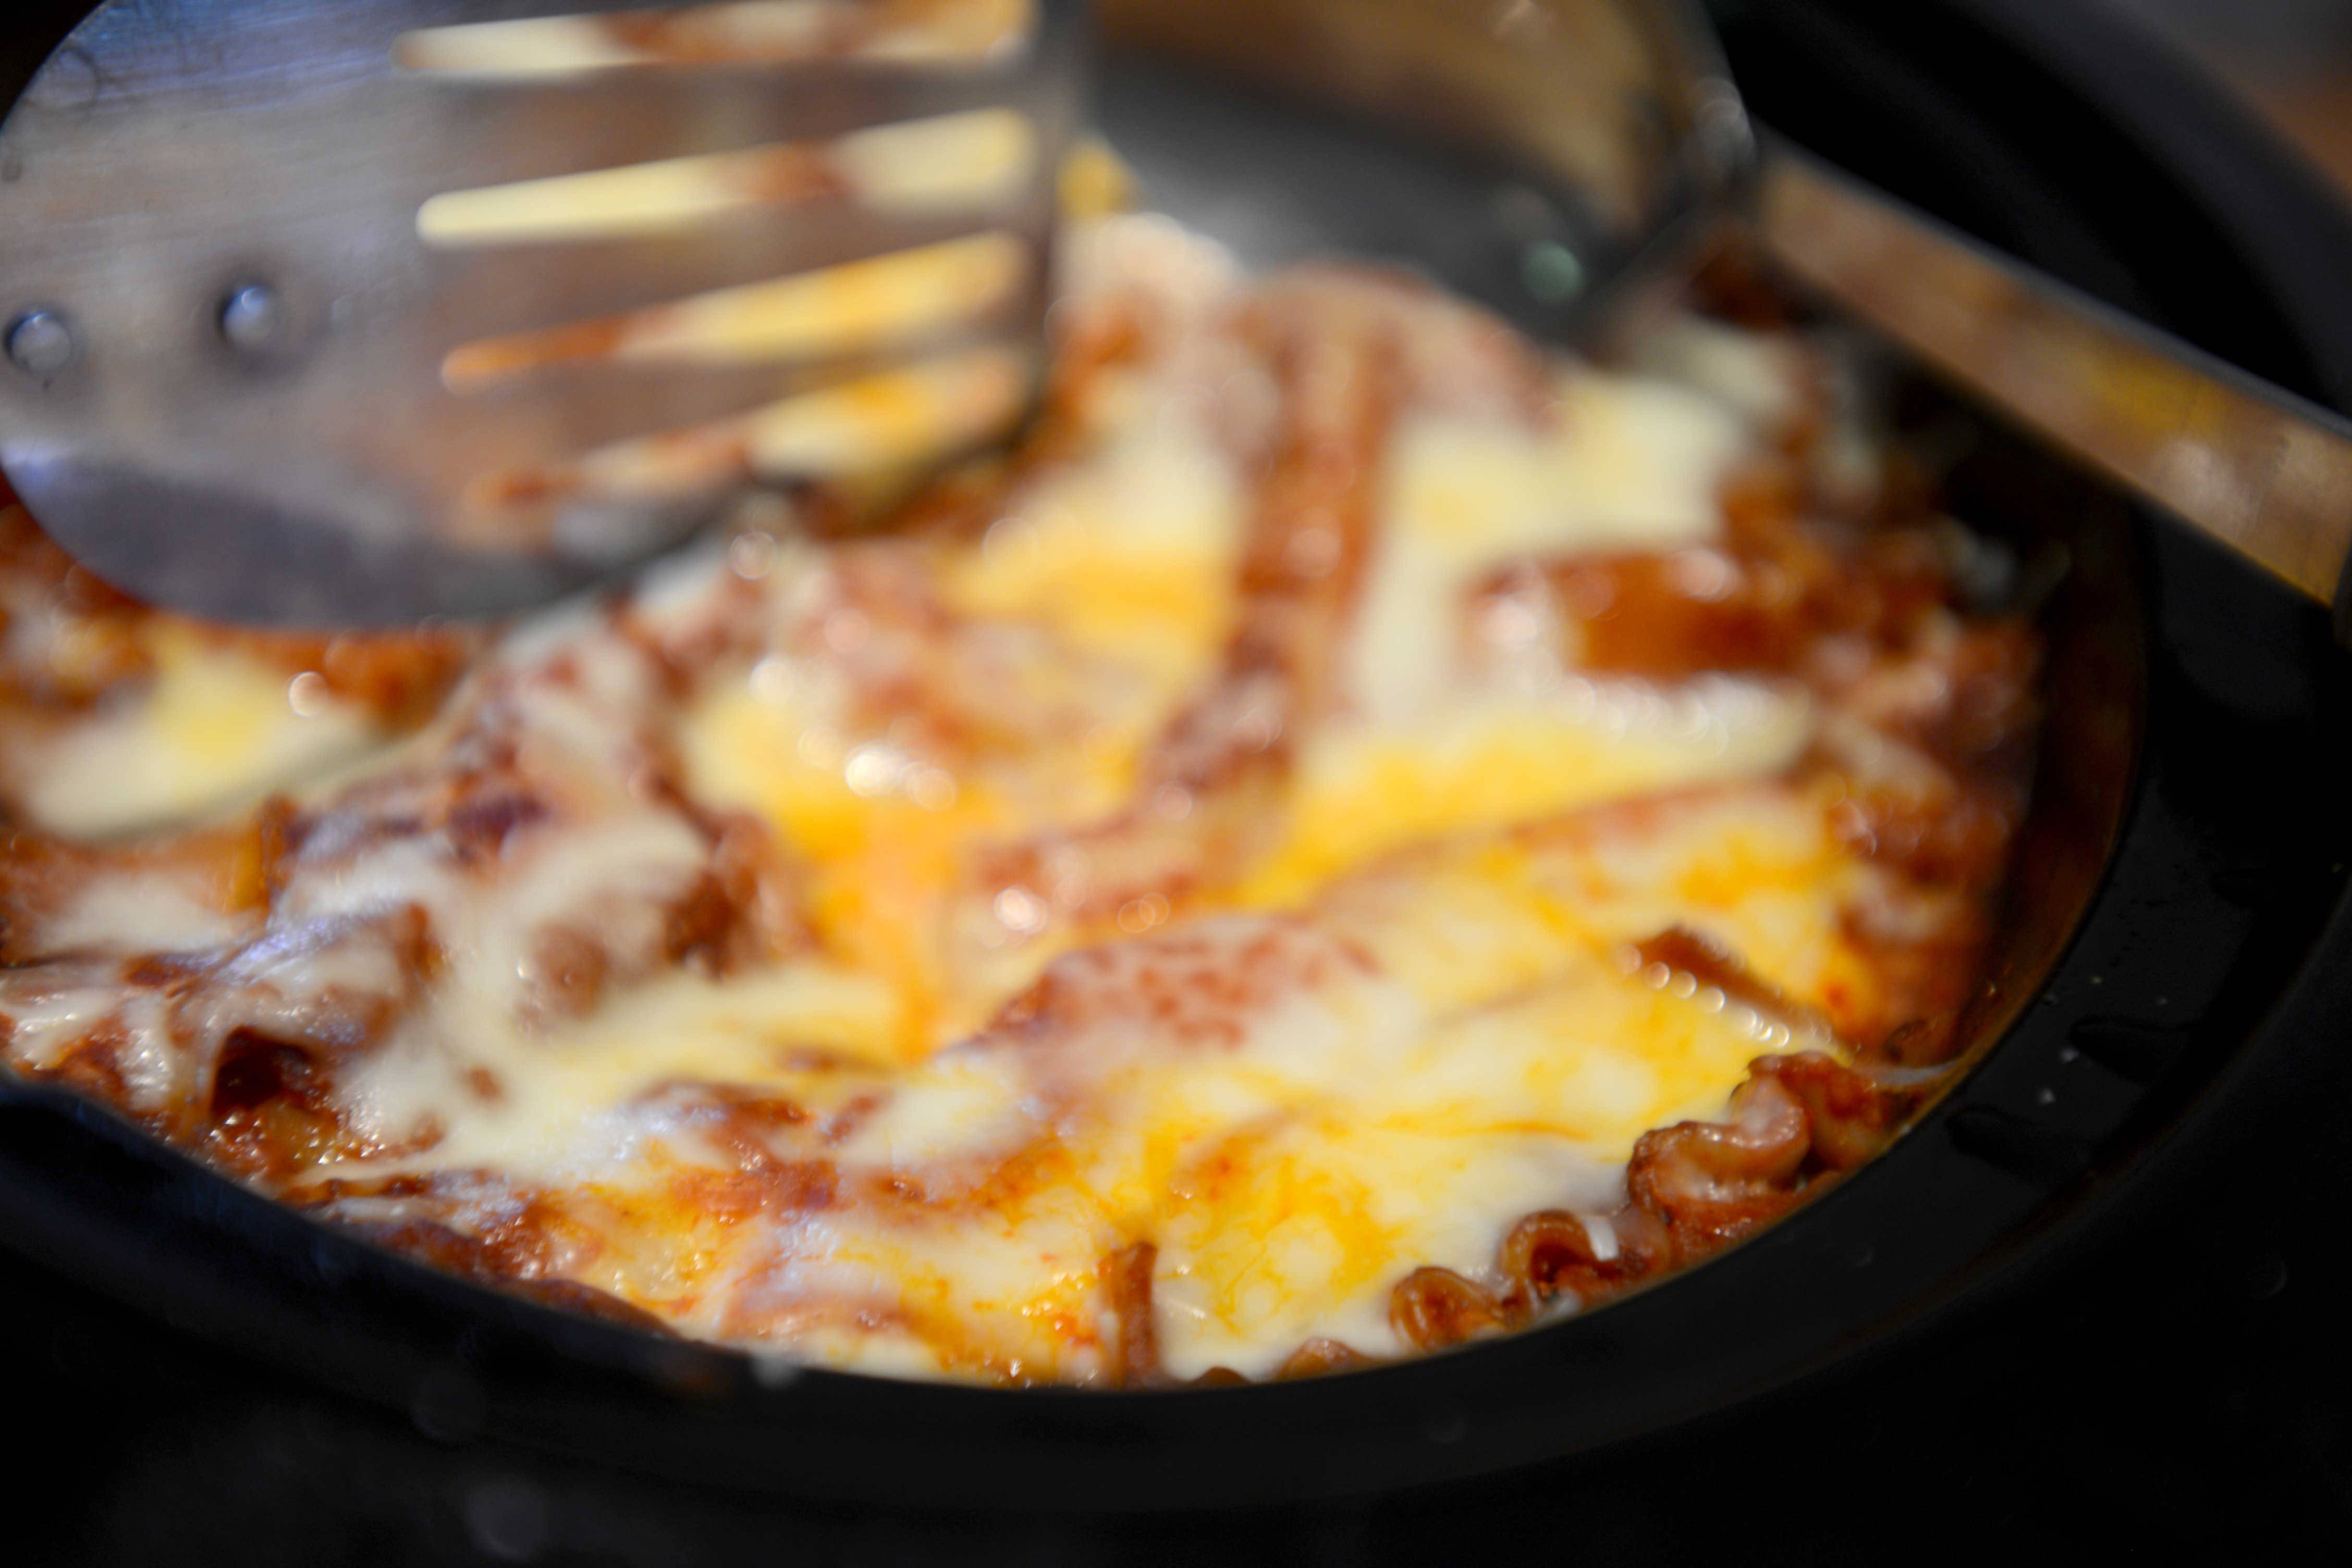 For those hot days when you don't want to turn on the oven, try Penny Kazmier's lasagna that cooks in a crockpot.